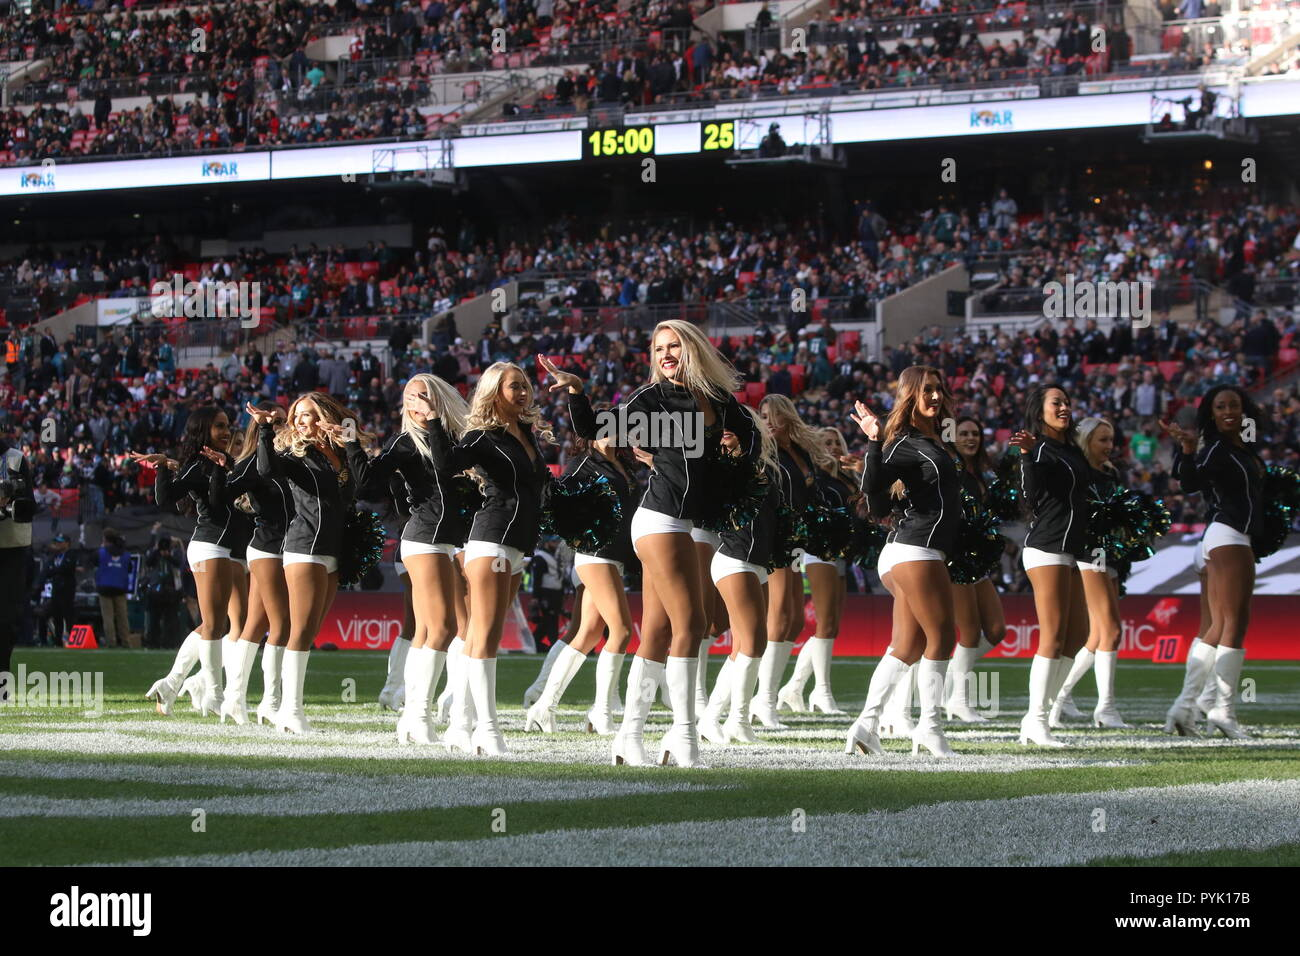 London, UK. 28 October 2018.   Cheerleaders, at the Eagles at Jaguars - credit Glamourstock Credit: glamourstock/Alamy Live News - Stock Image